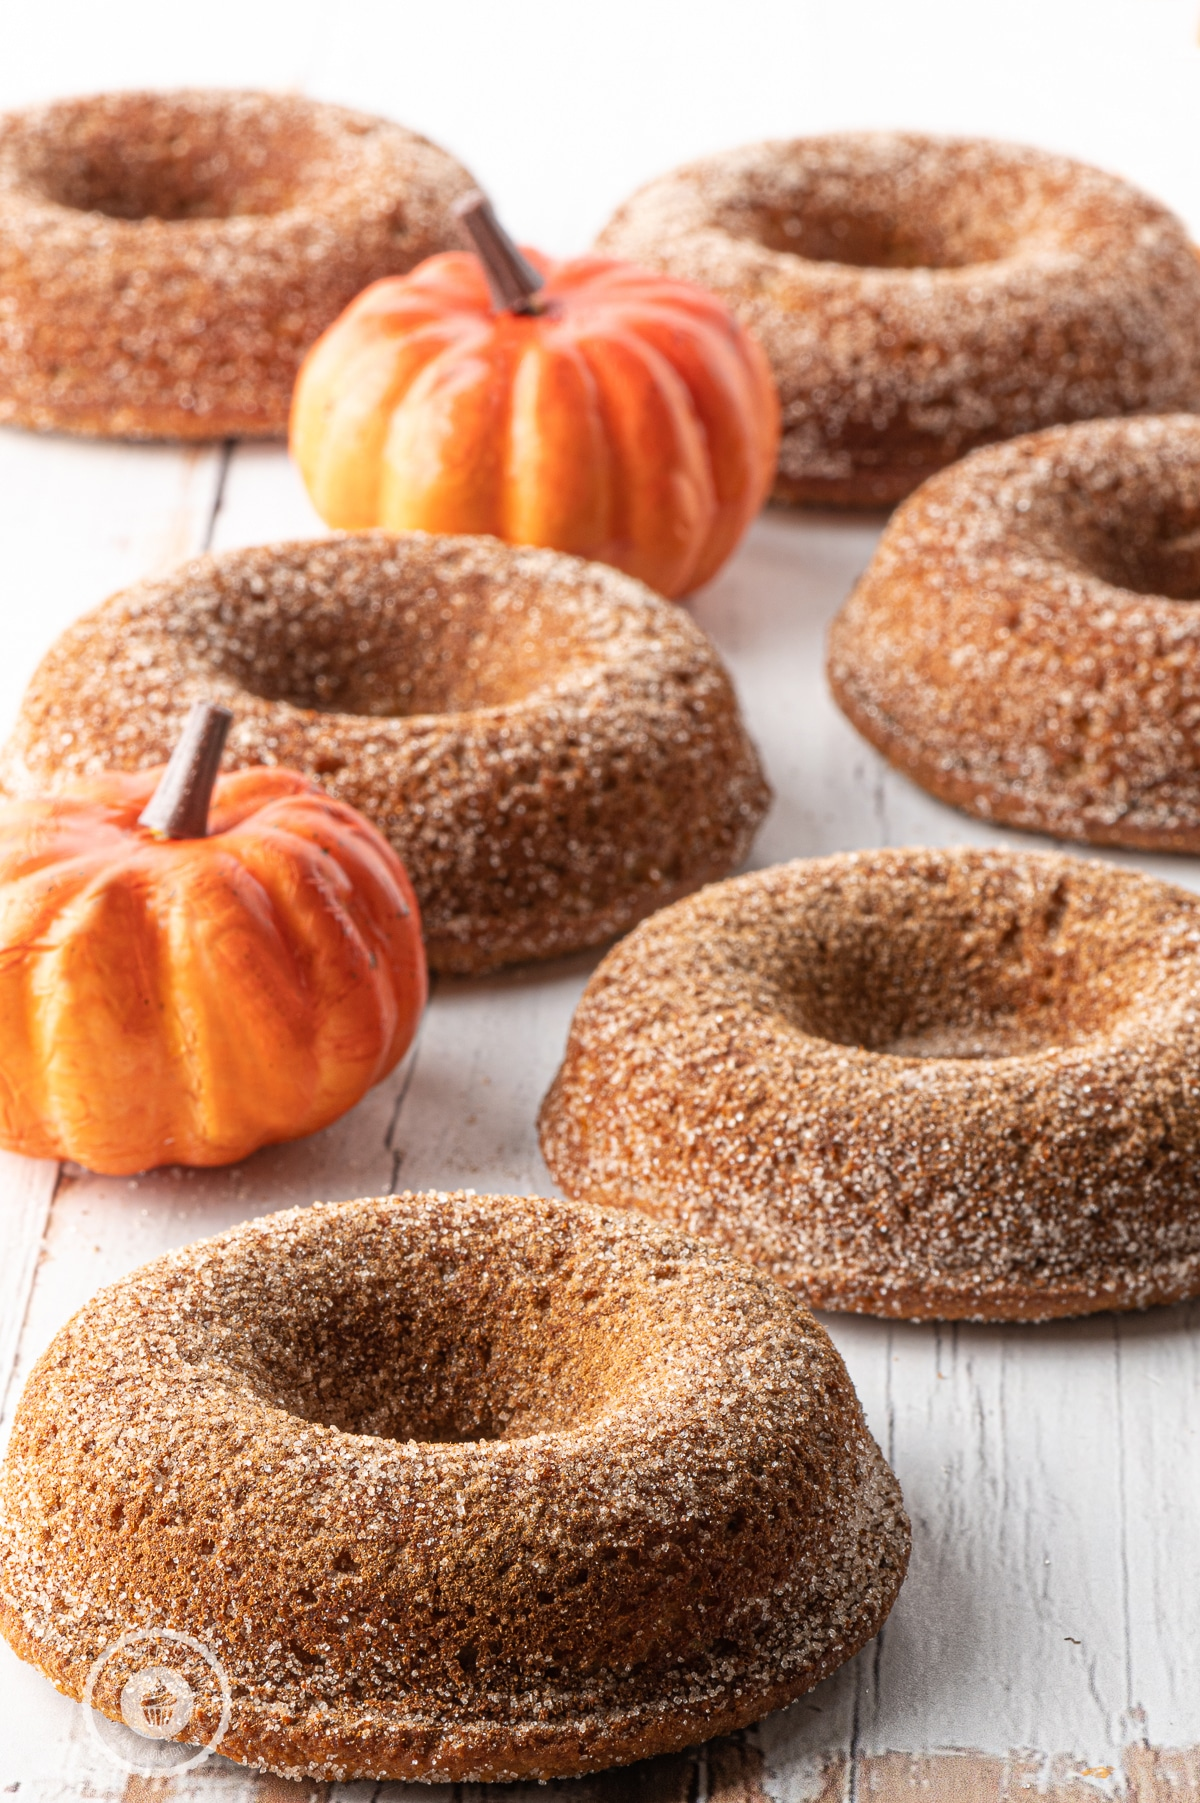 Pumpkin donuts laid out on a white rustic wooden table with mini orange pumpkins scattered around.